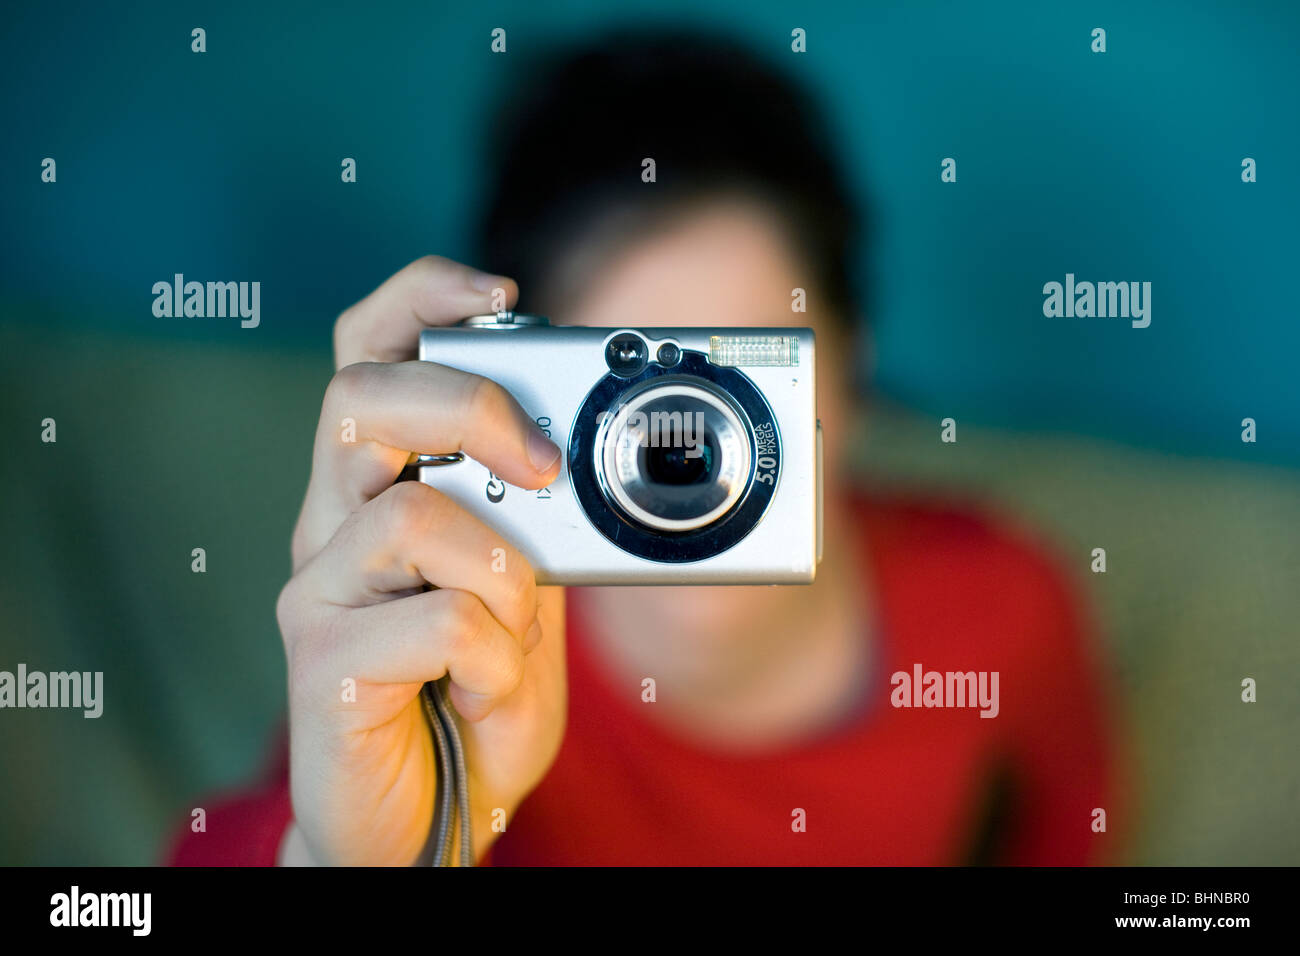 Young woman takes photo with digital camera, London - Model Released - Stock Image